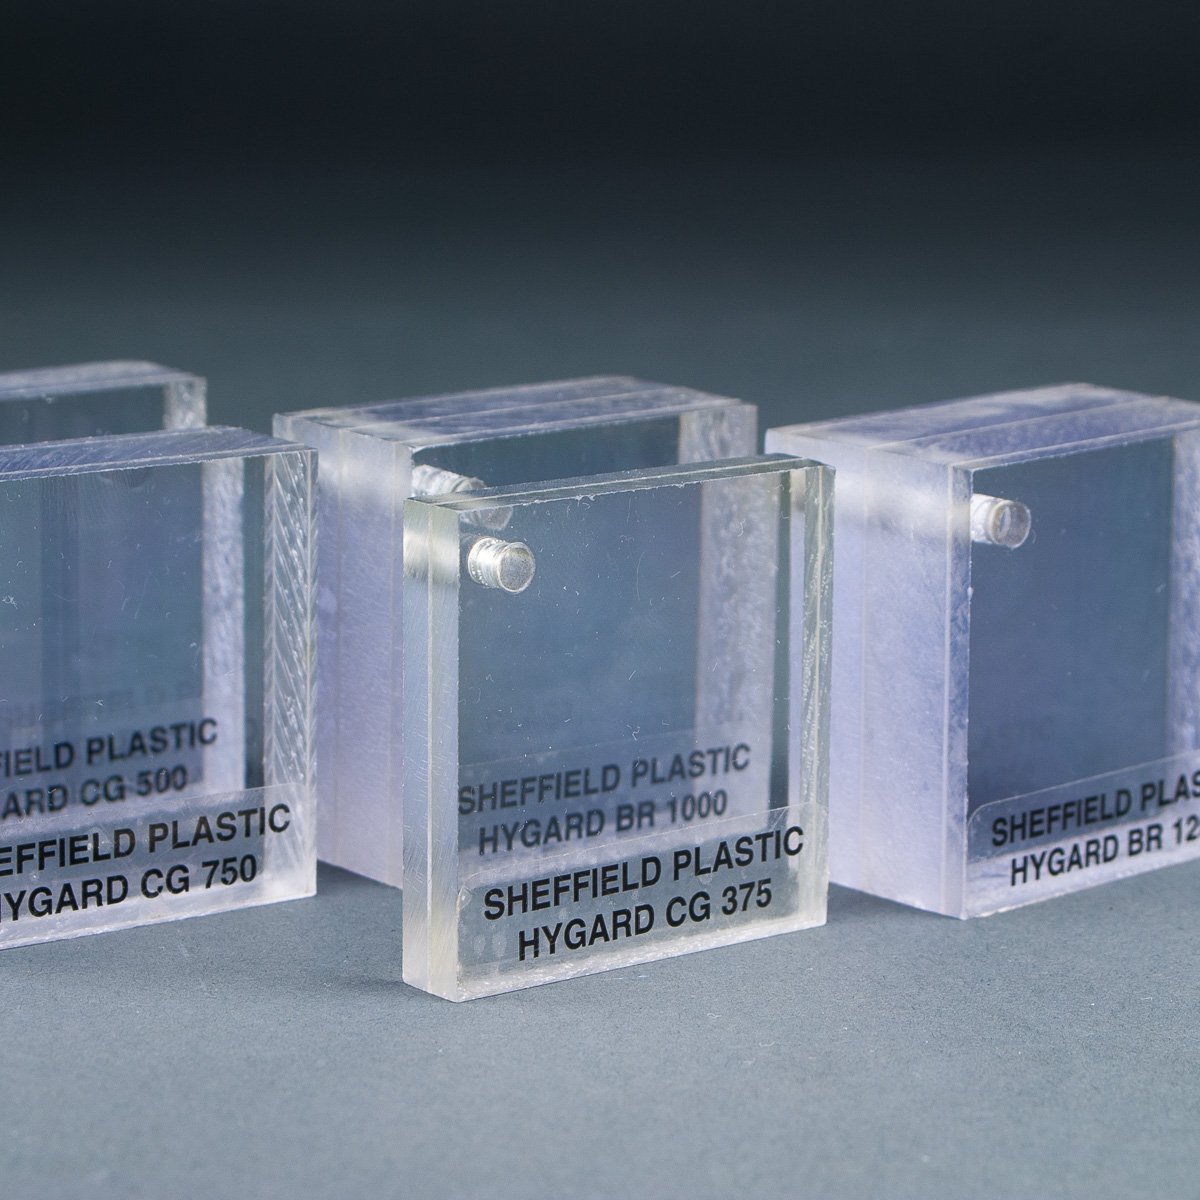 Safety and security glazing from Lustercraft